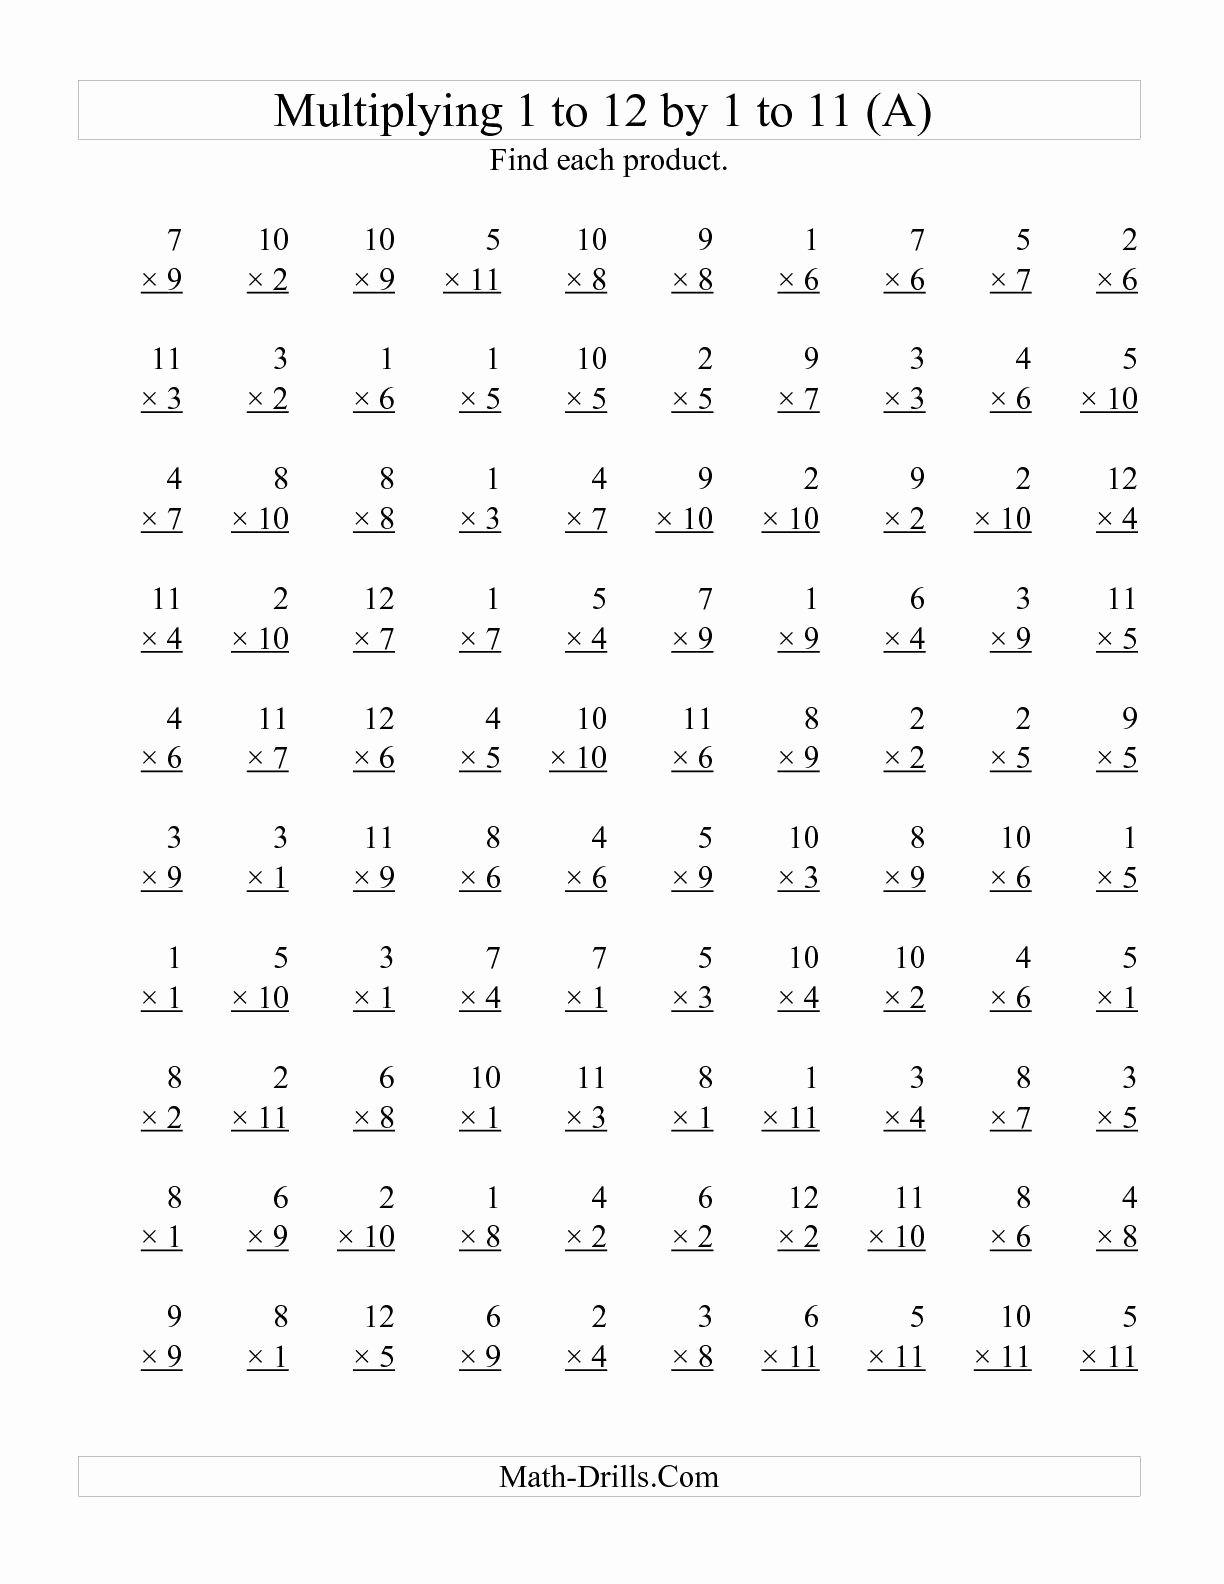 Vertical Multiplication Worksheets Awesome the 100 Vertical Questions Multiplying 1 to 12 by 1 to 11